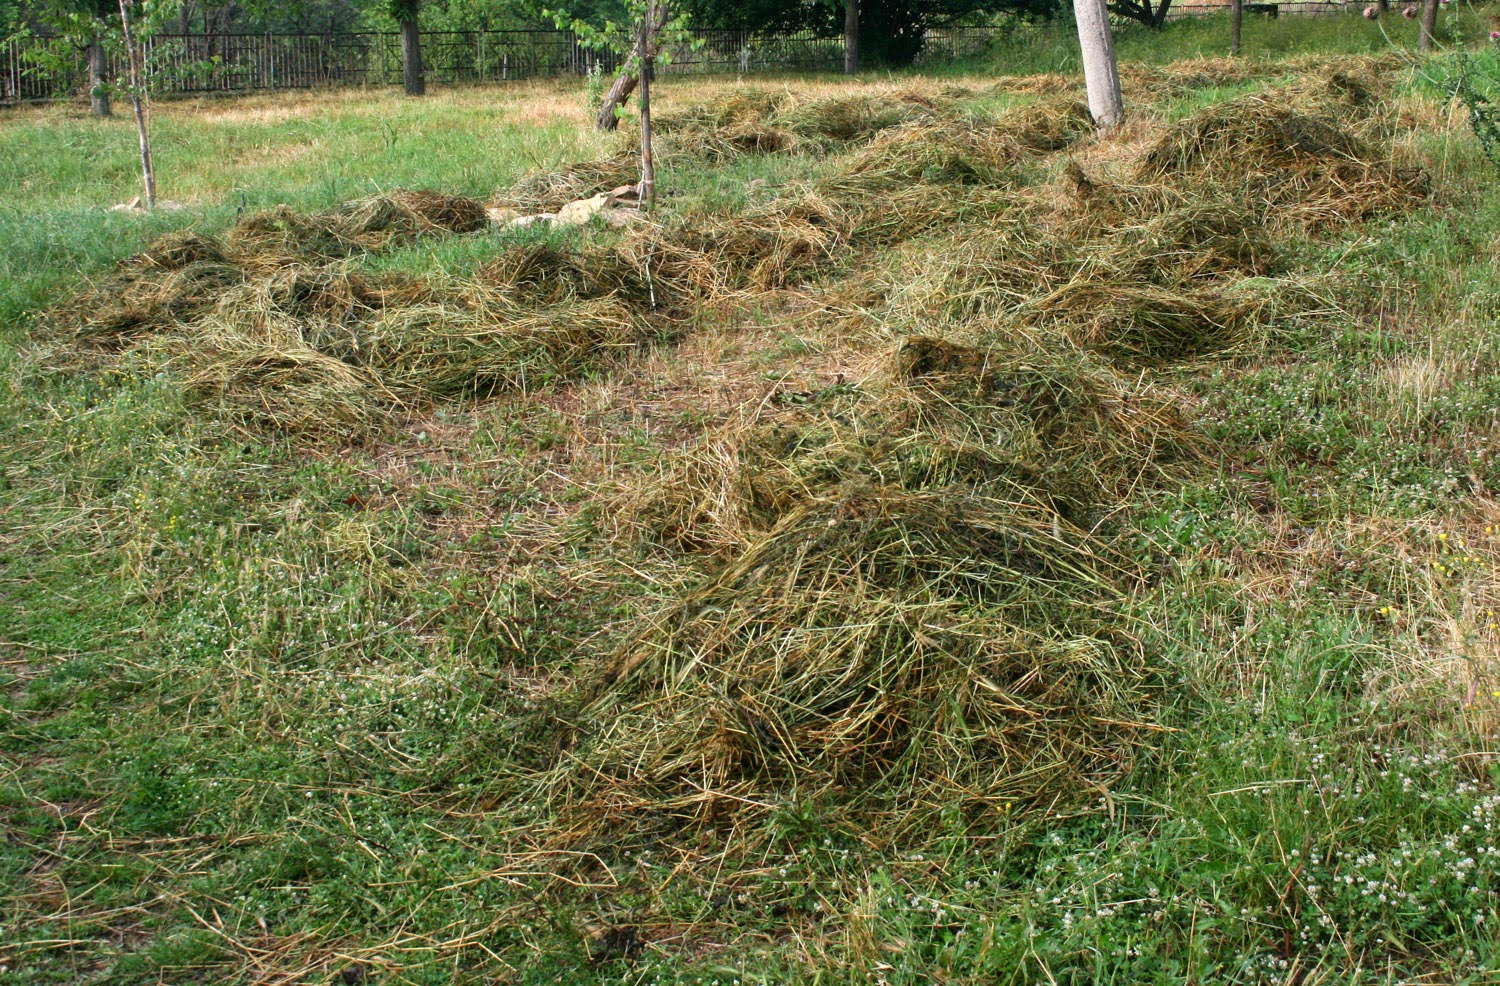 Spreading the hay to dry. Again.